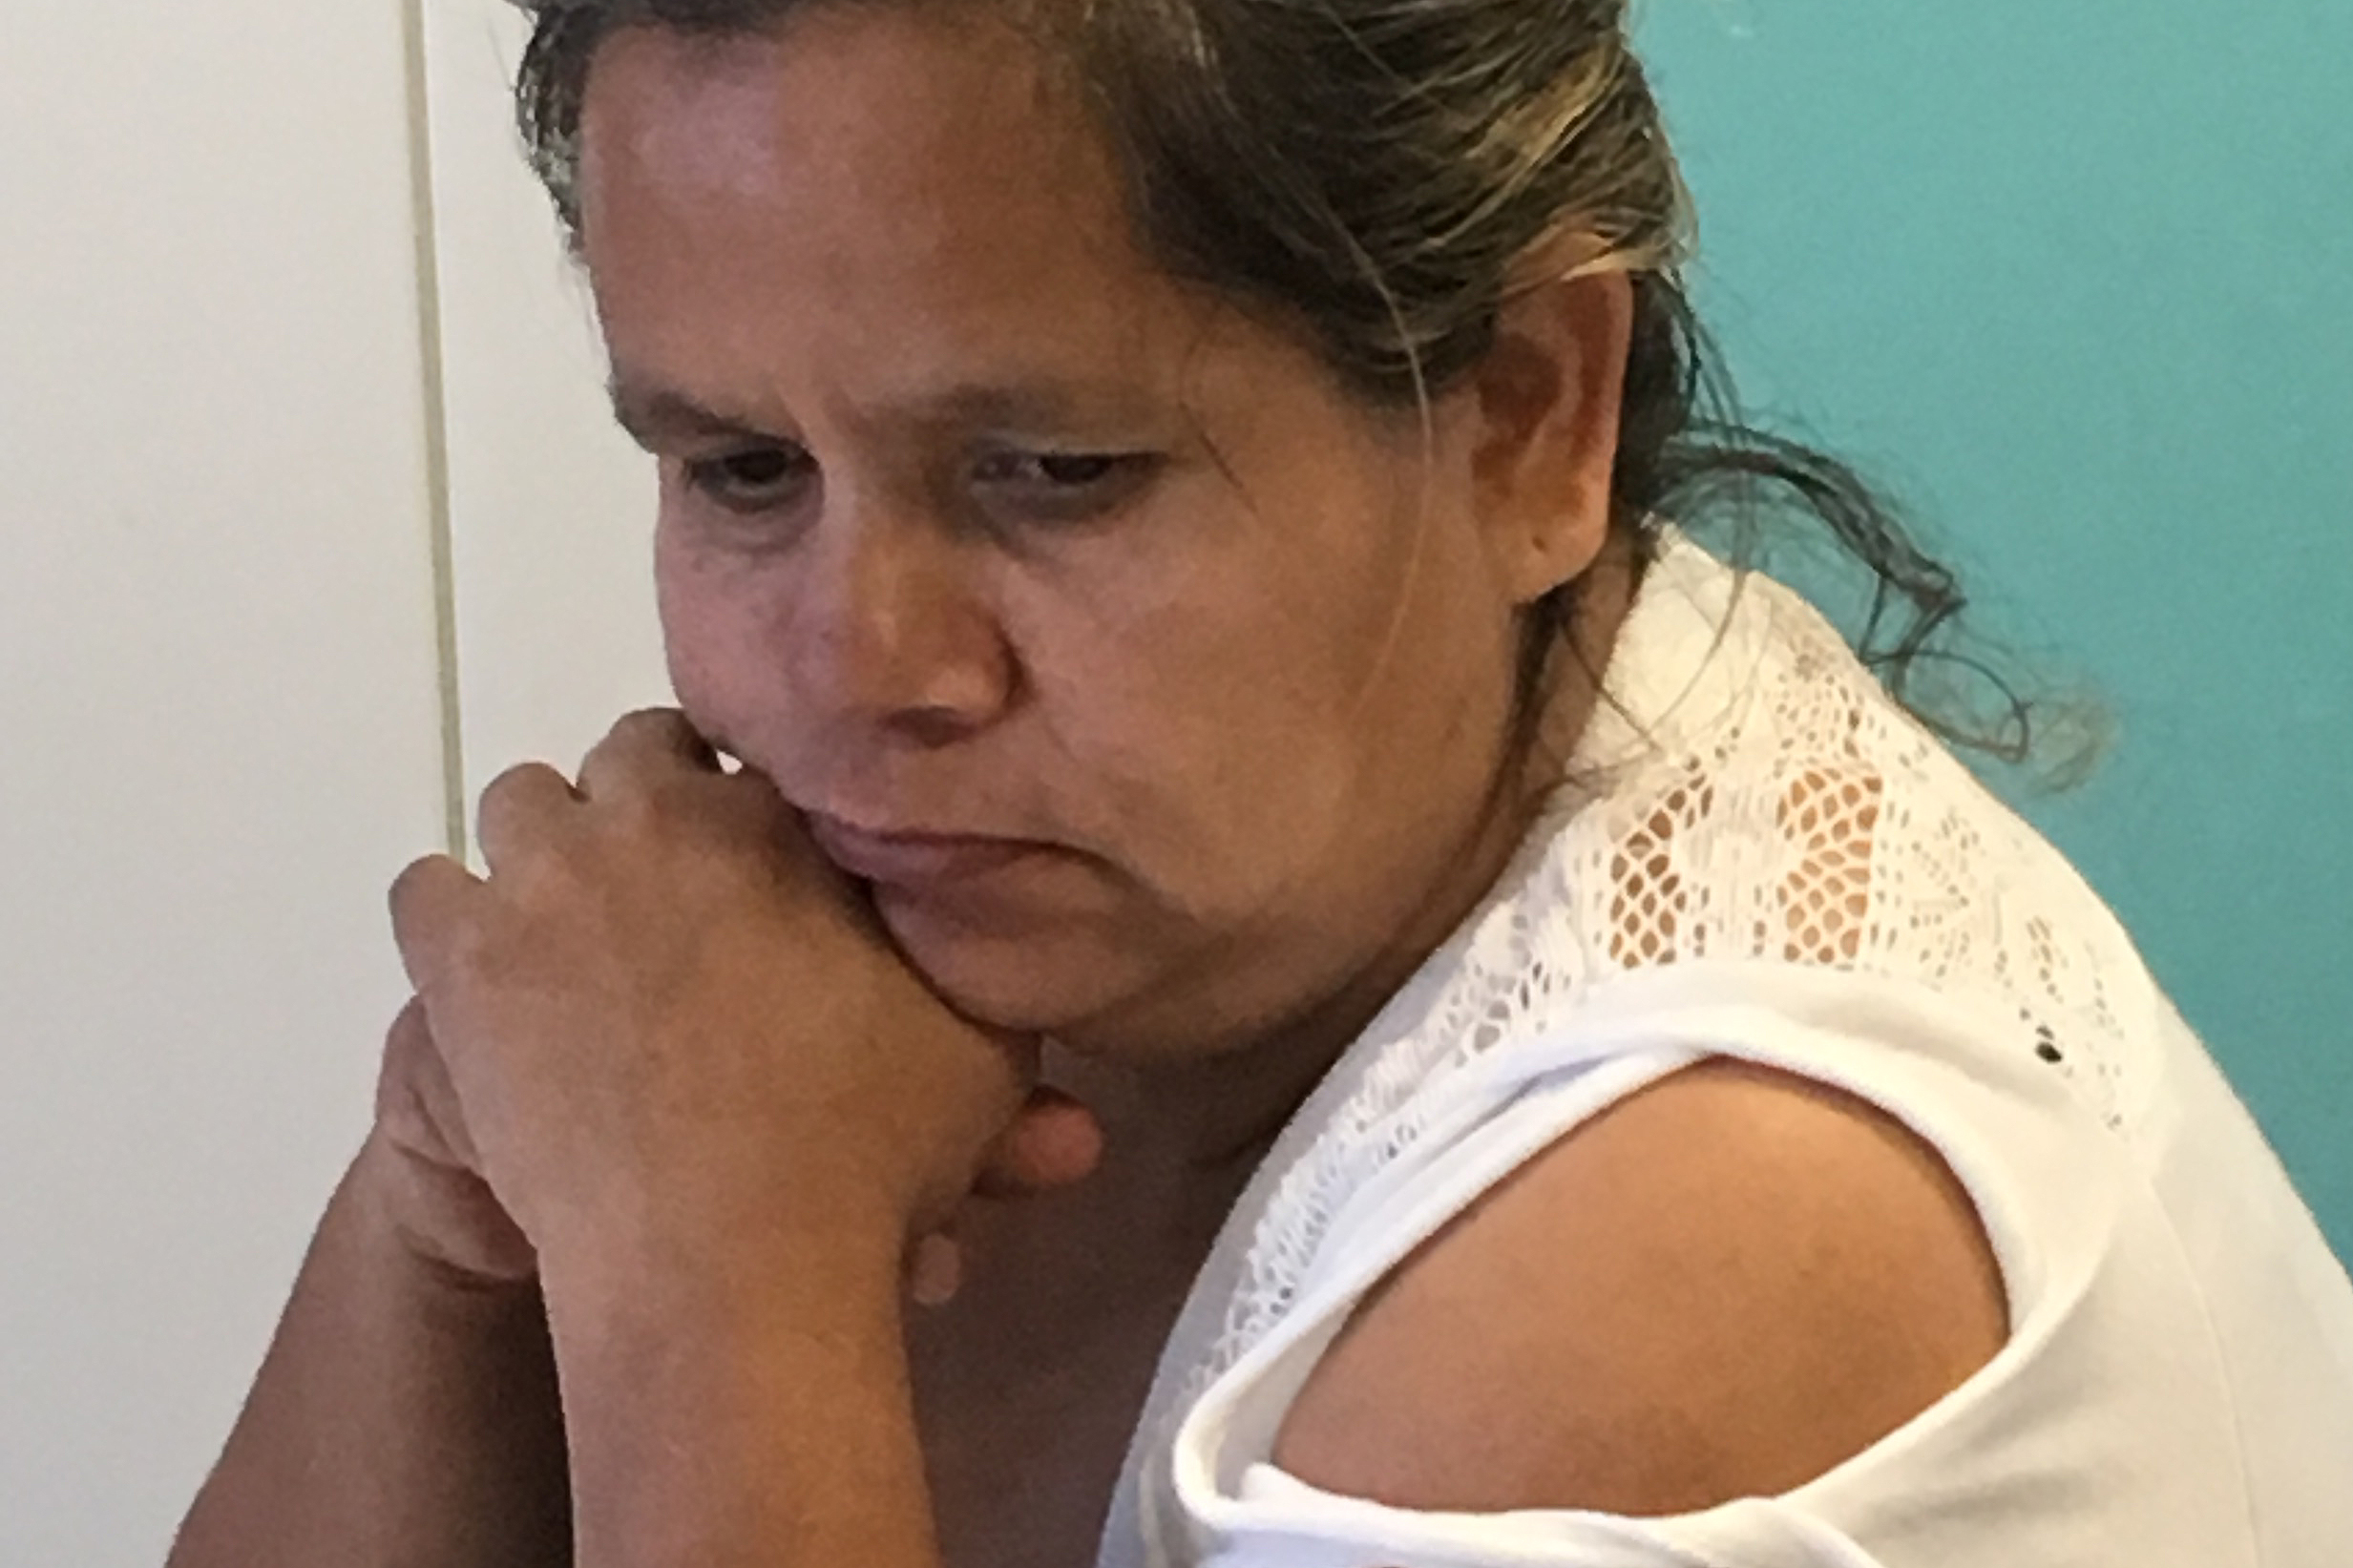 <p>Lorena -- who asked that her last name not be published -- saysher 7-year-old son is worried shewill be deported.</p>